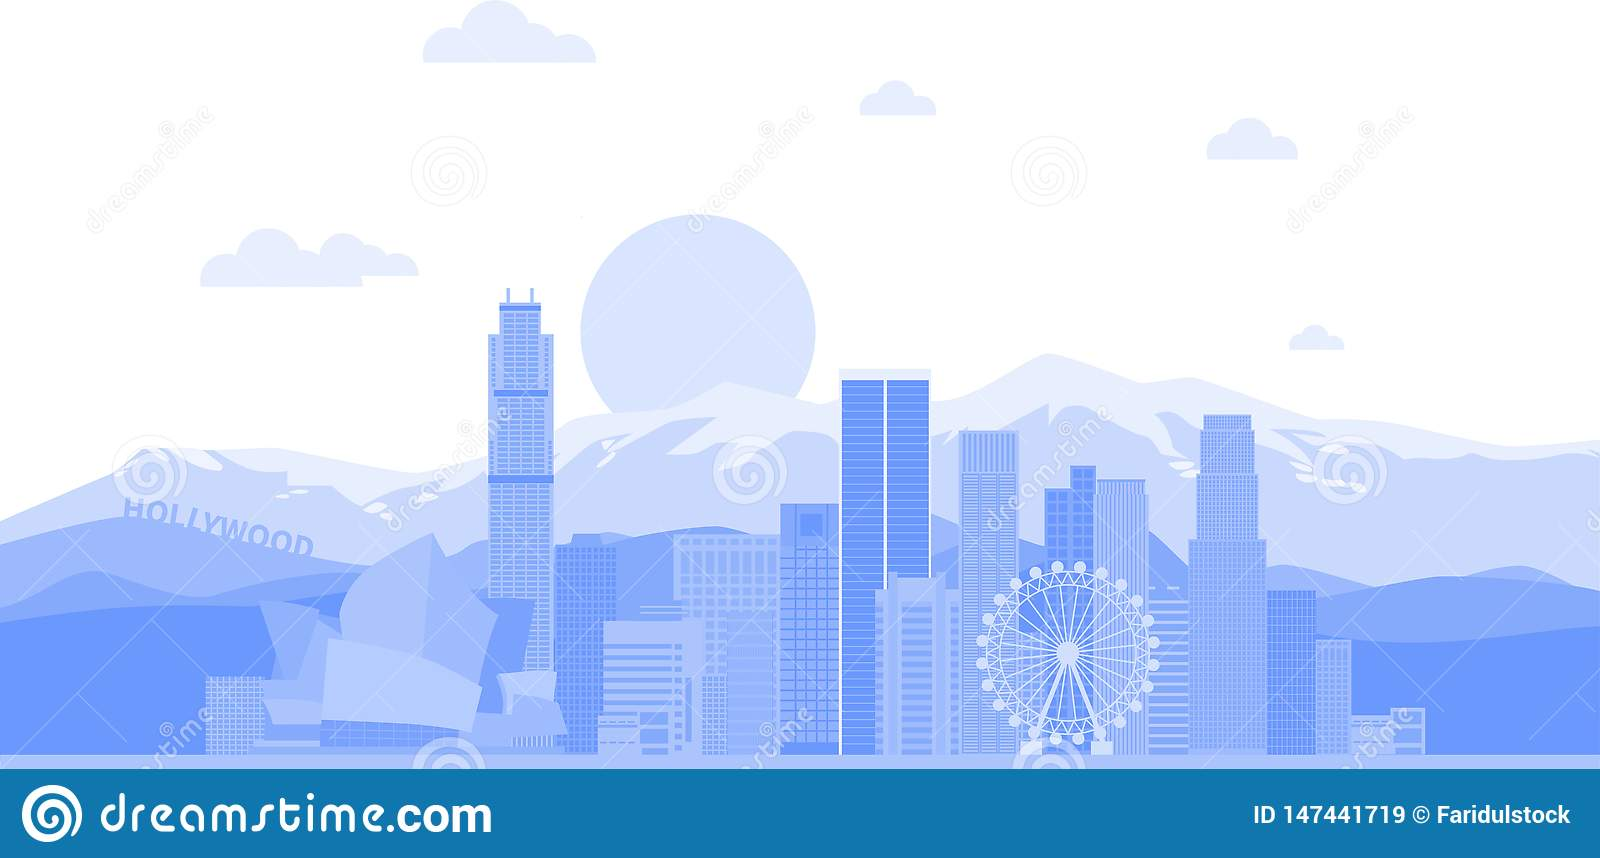 Los Angeles United States city skyline vector background. Flat trendy illustration